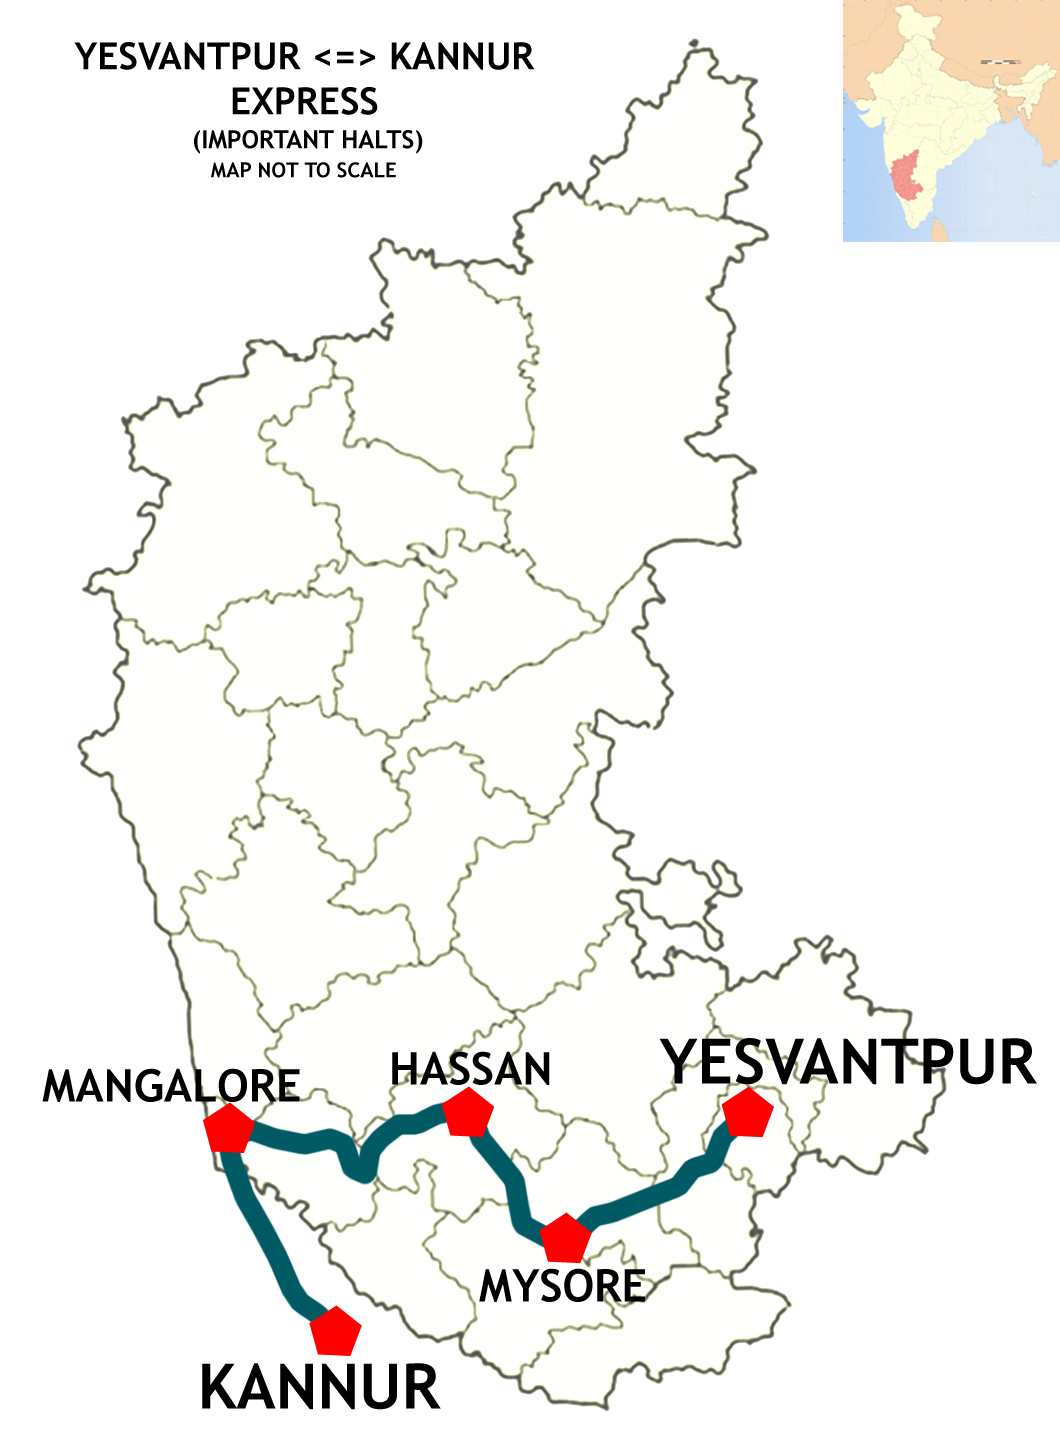 FileYesvantpur Kannur Express Route Mapjpg Wikimedia Commons - Kannur map